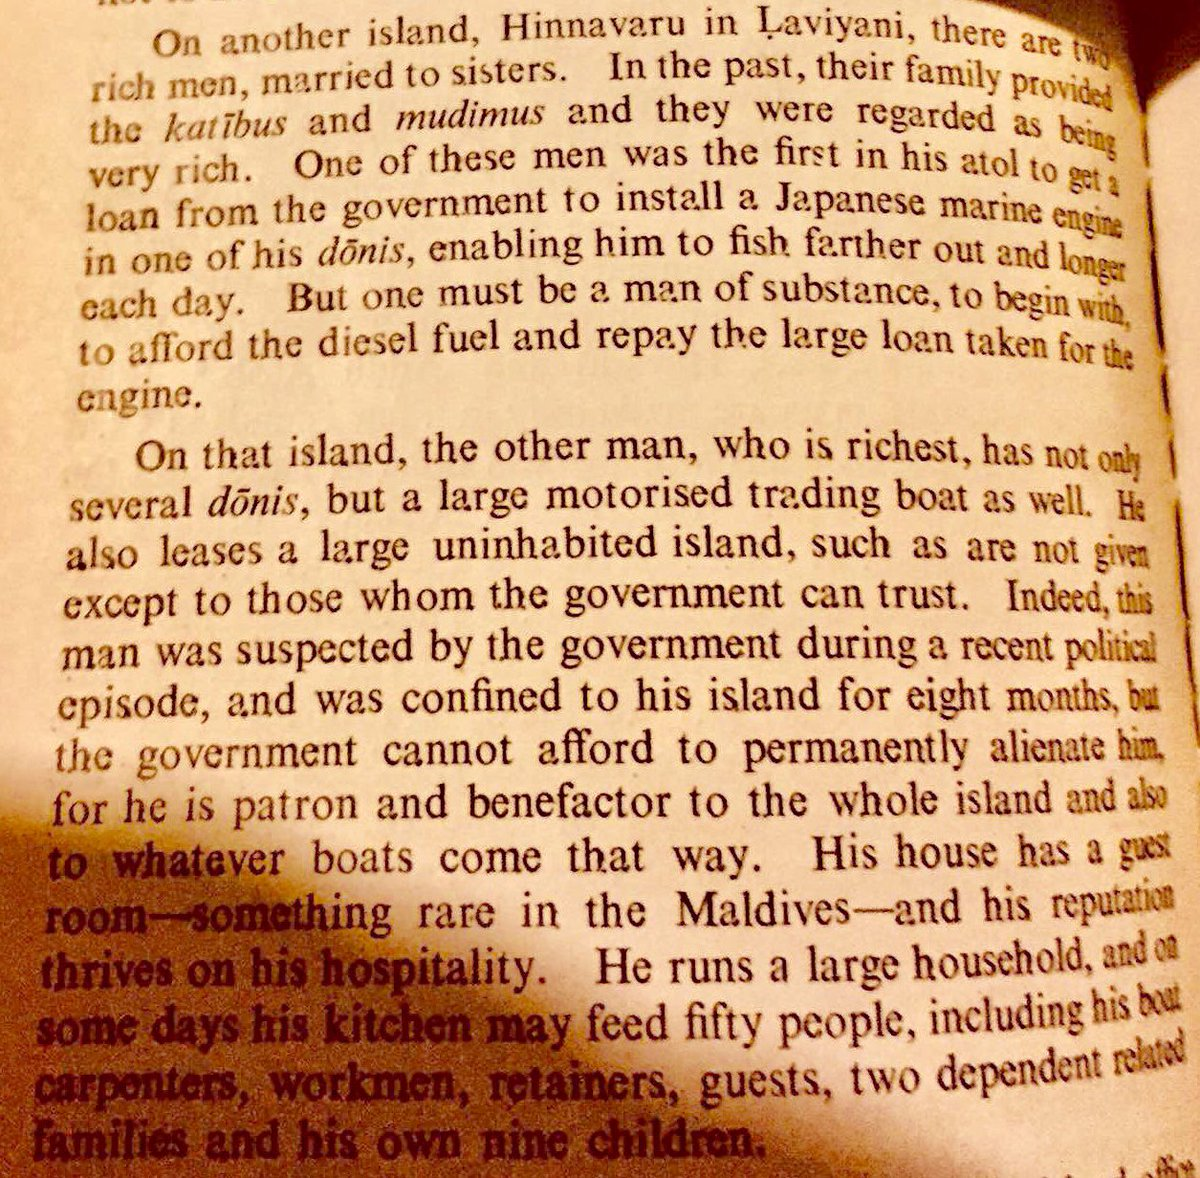 This is how we lived then; sharing and caring, assuming responsibility. This is Clarence Maloney writing, and many people know who he's writing about. There was life beyond Male' and the govt in Male'. @UmarbeygeNijaaru @mahireasa  @SusanIbrahim<br>http://pic.twitter.com/6hVh3MFfmF